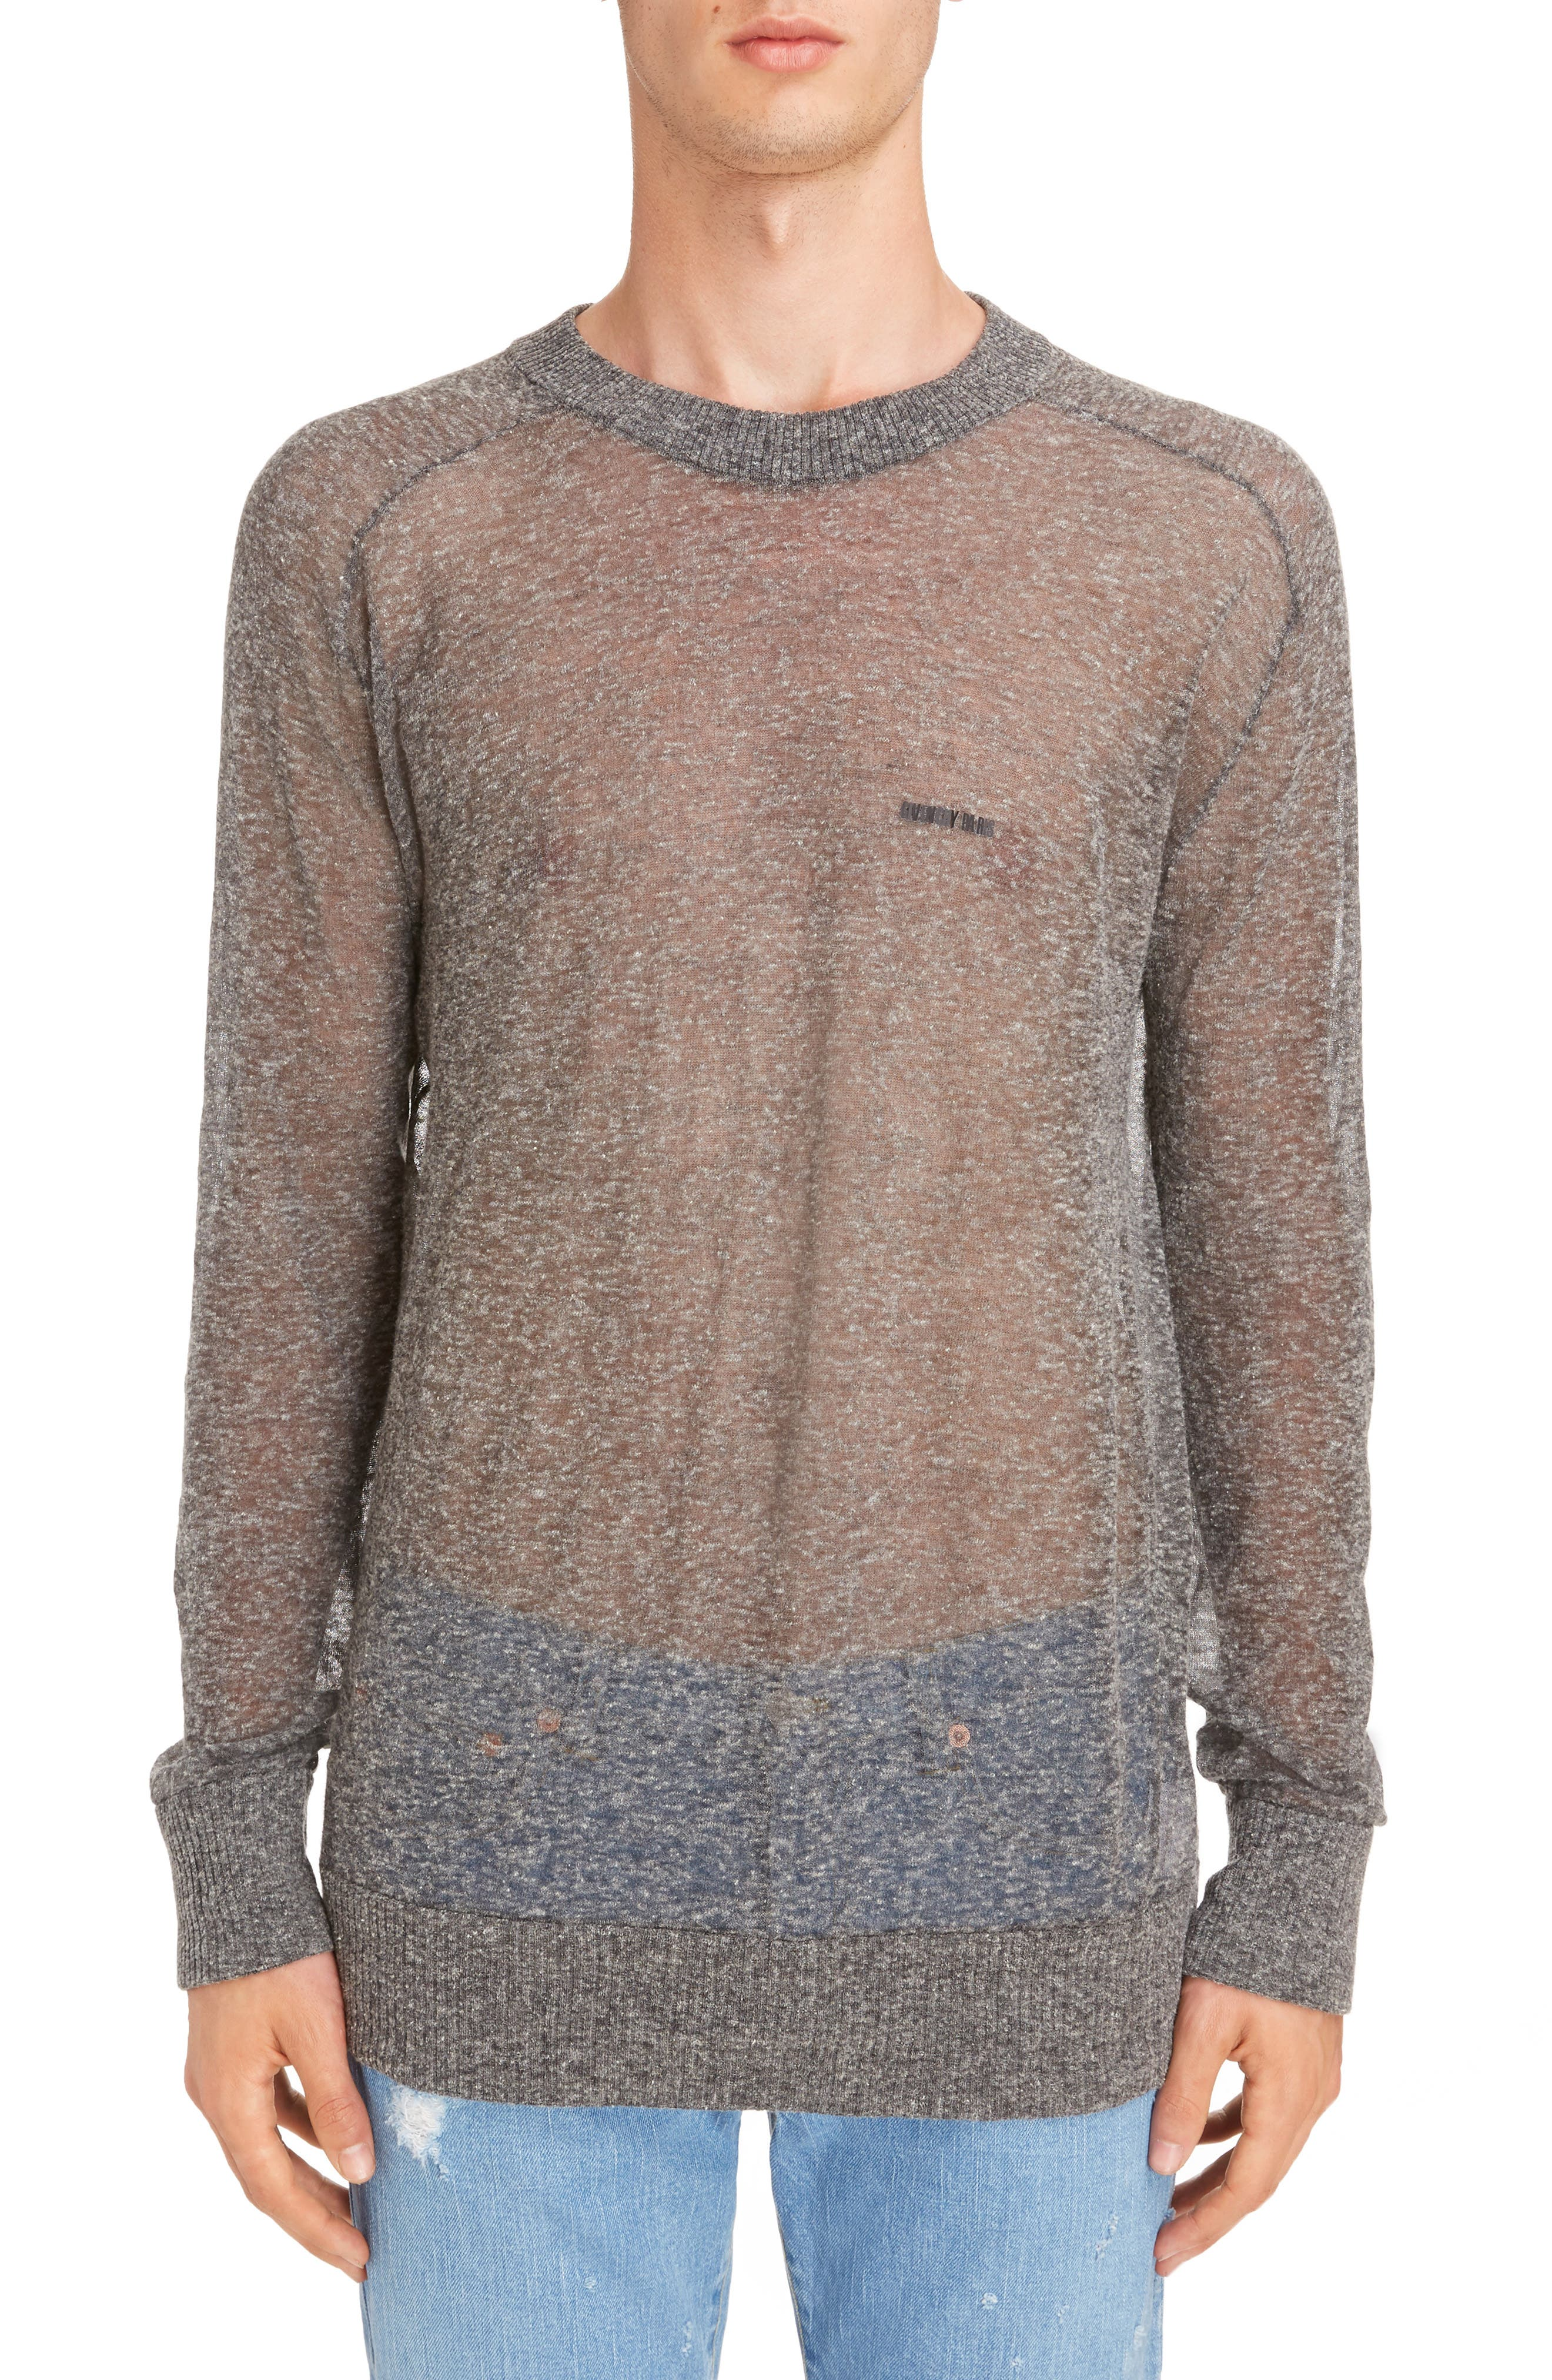 Alternate Image 1 Selected - Givenchy Technical Linen Blend Crewneck Sweater